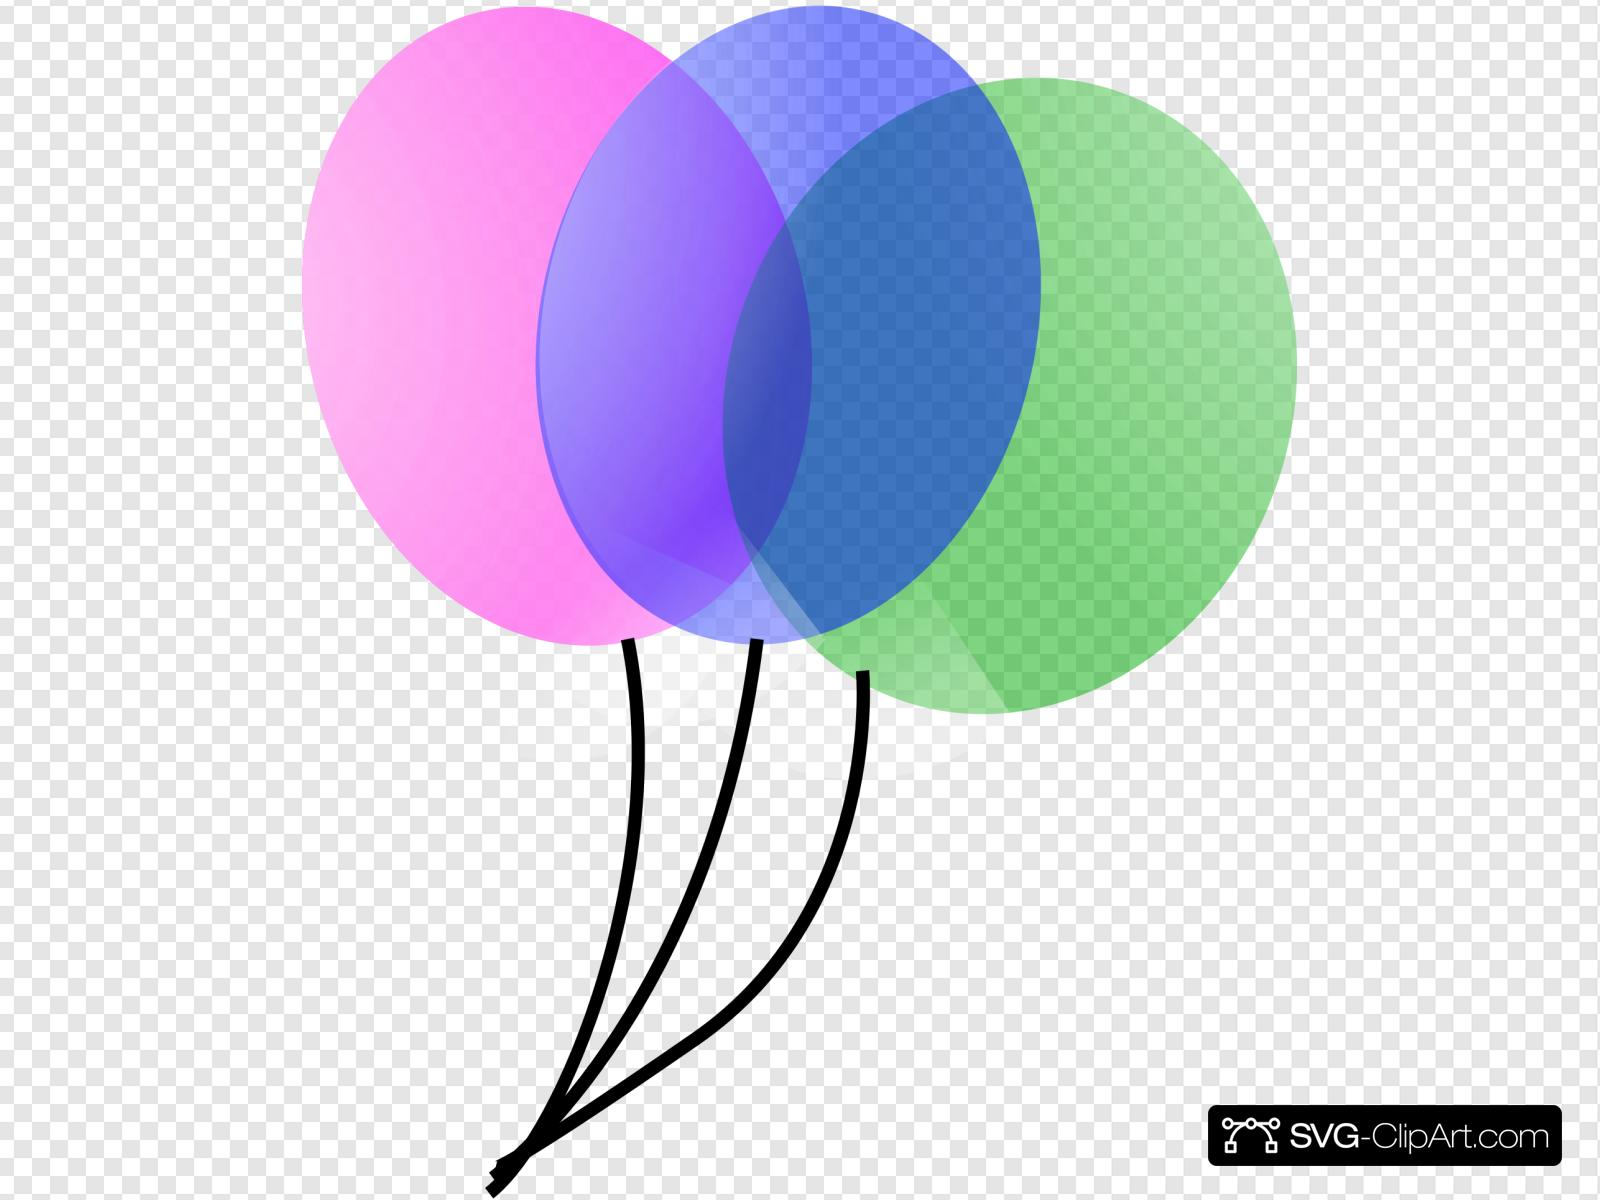 Globos Clip art, Icon and SVG.